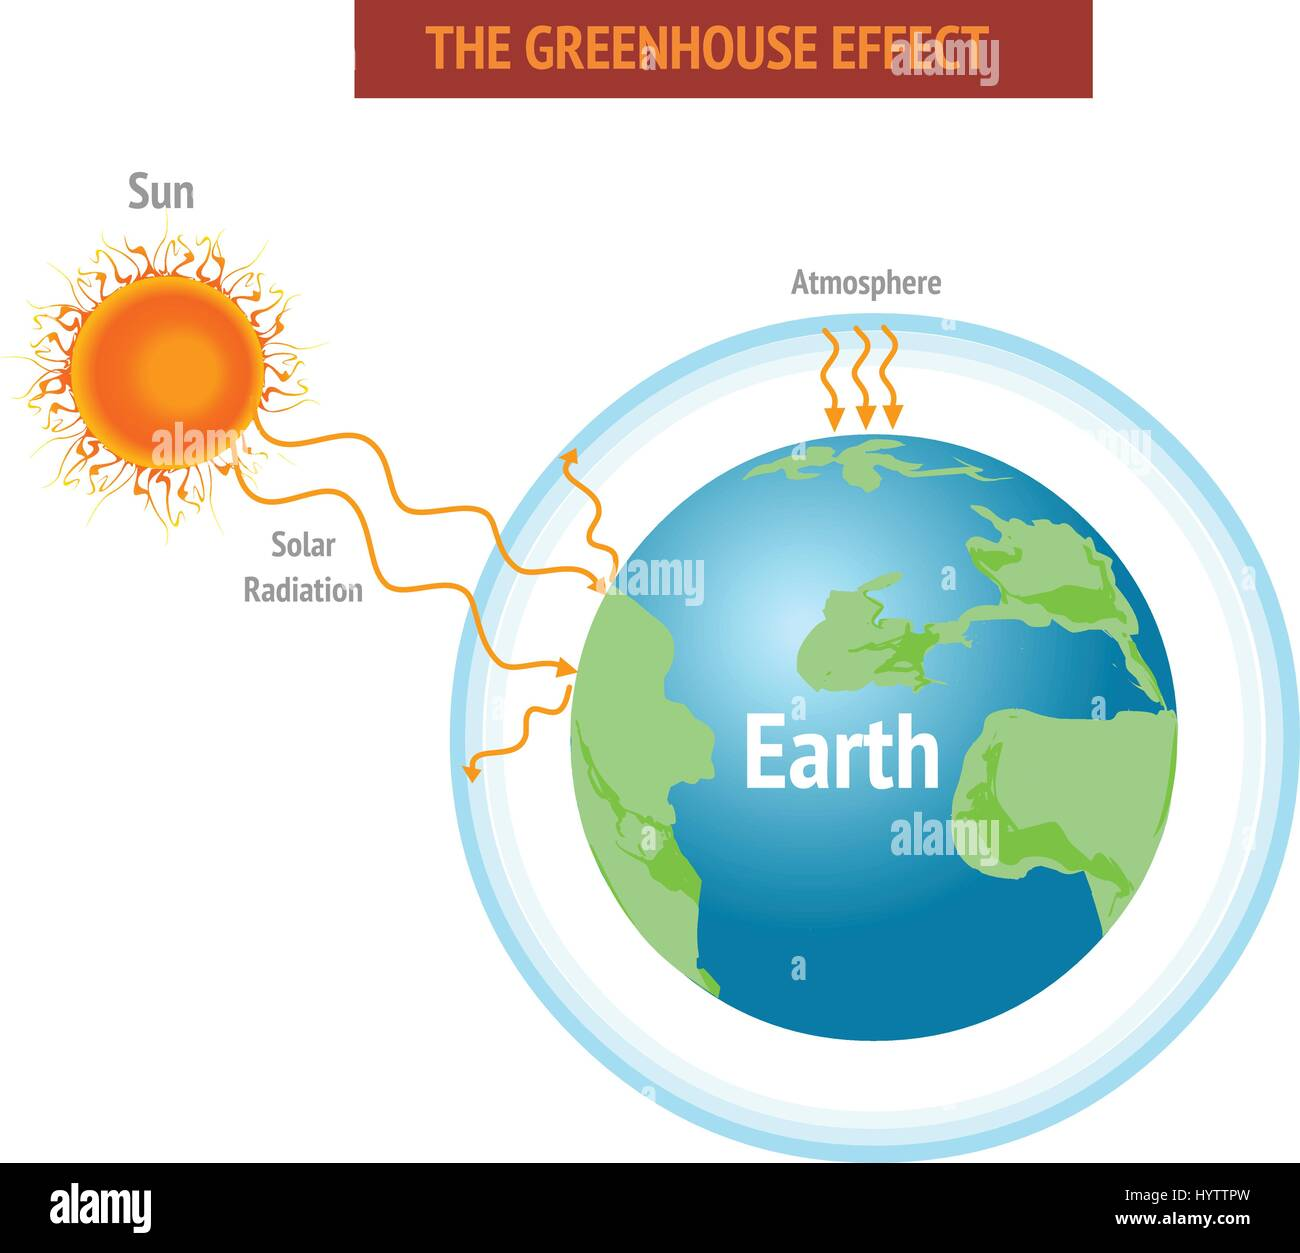 the issue of the greenhouse effect and global warming in the modern world Global warming is the increase in the surface and atmospheric temperature generally caused by presence of excess amount of greenhouse gases (such as carbon-di-oxide (co2), chlorofluorocarbons (cfcs), etc) and other pollutants resulting in a change in climate, greenhouse effect, and other negative consequences on the environment.